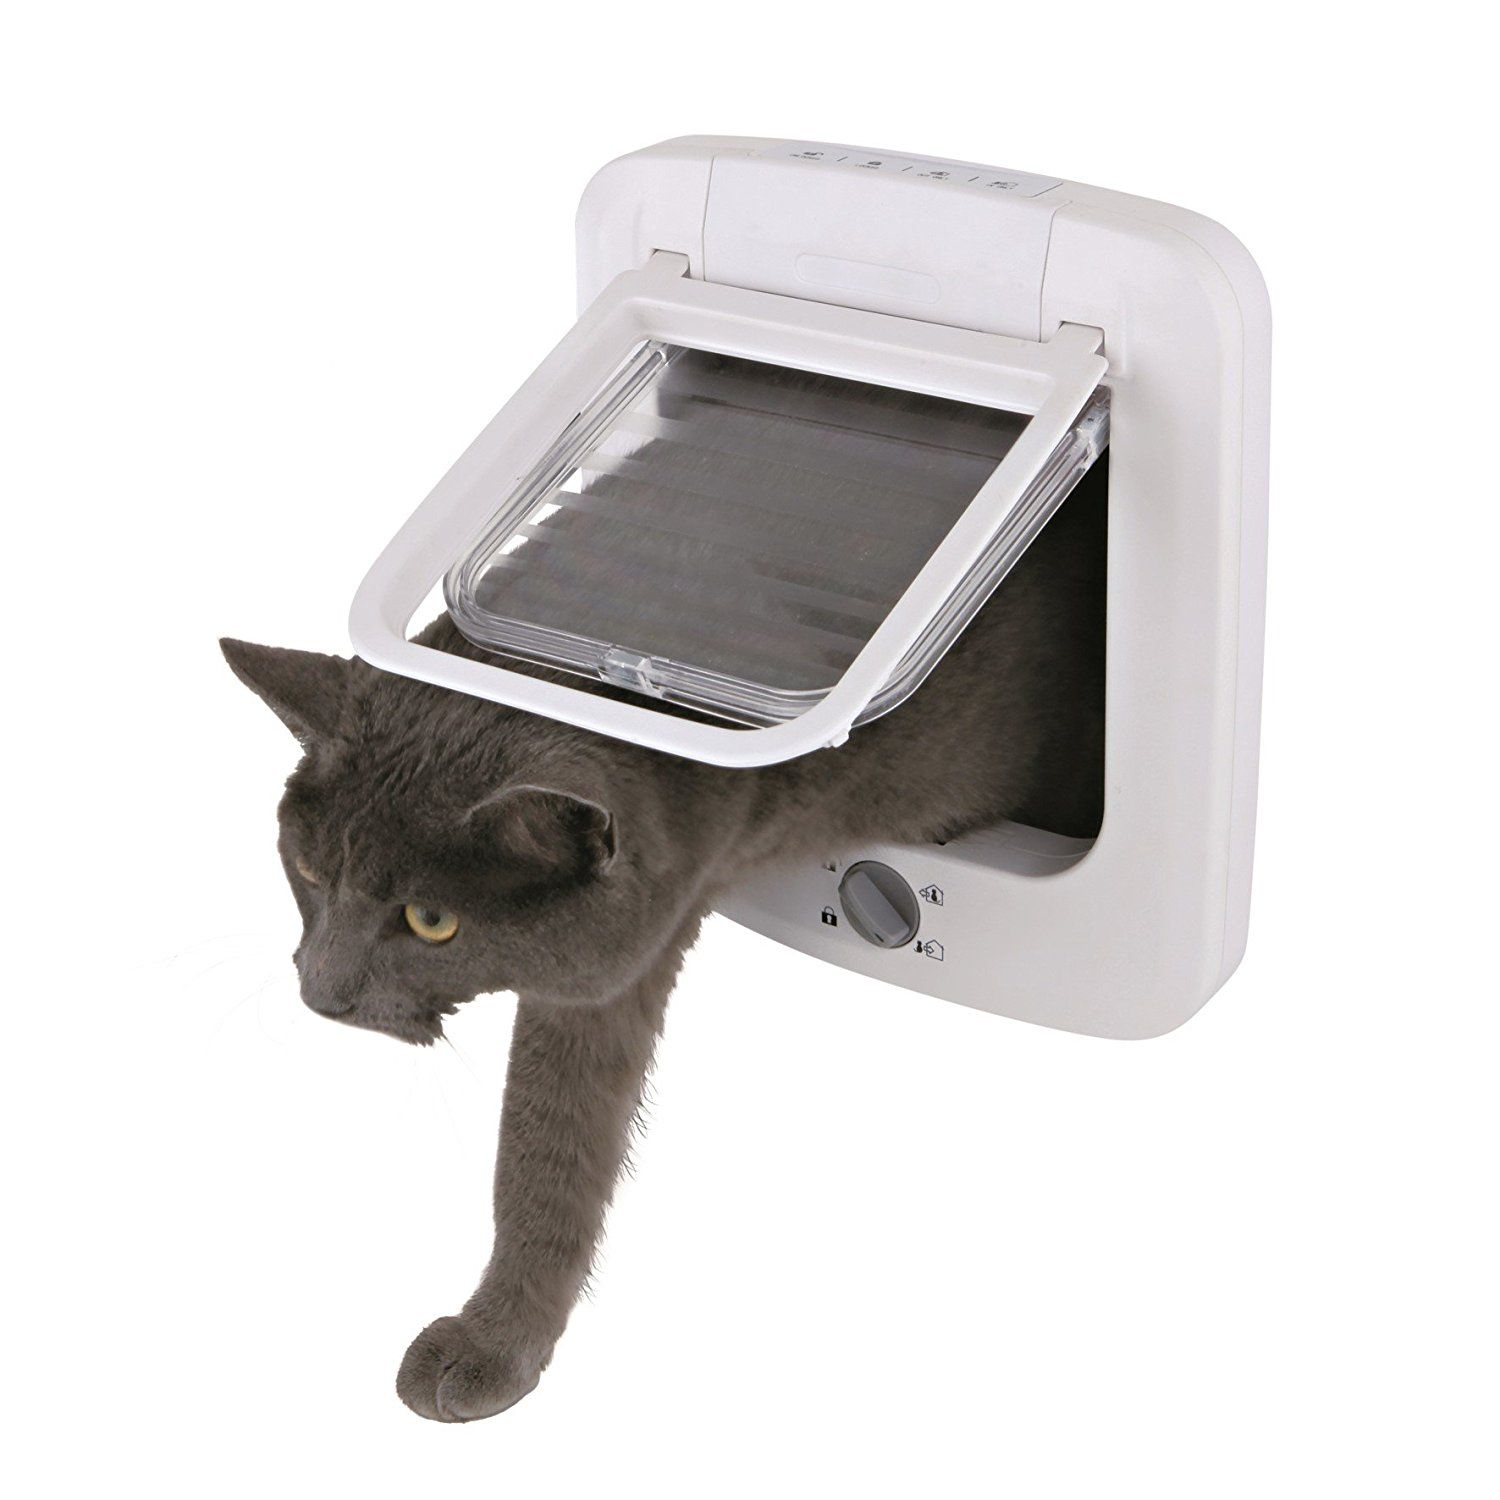 Trixie Cat Products 4 Way Plastic Cat Door With Rotary Lock Find Out More Details By Clicking The Image This Is An Amazon Affiliate Link With Images Cat Door Pet Door